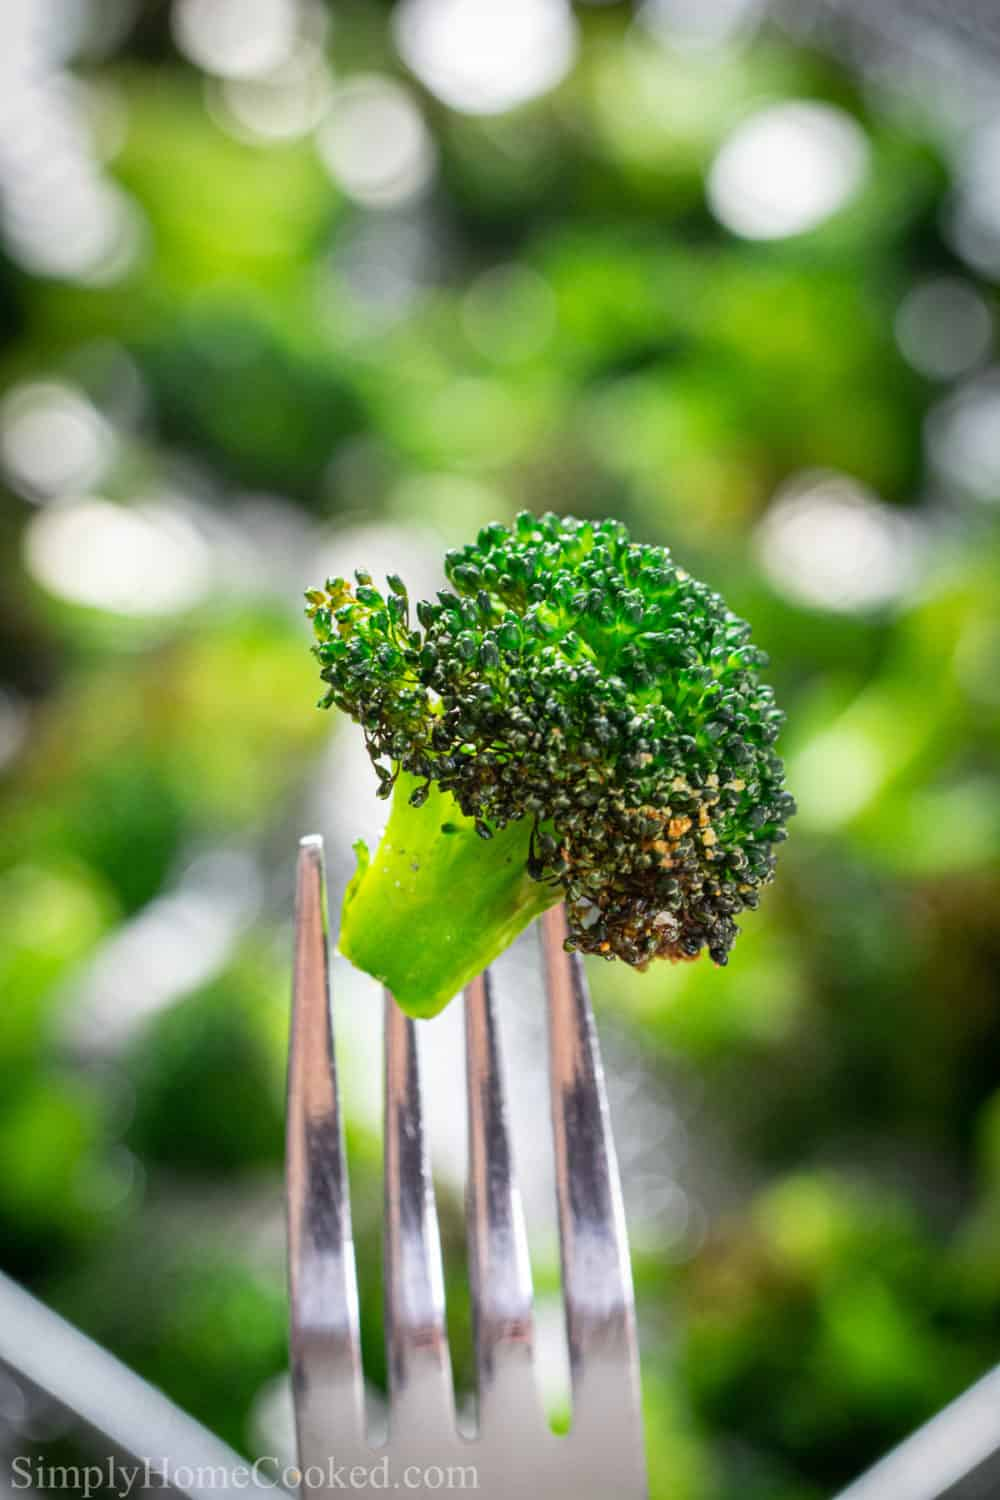 Close up of a crispy broccoli floret on a fork, with a green background.